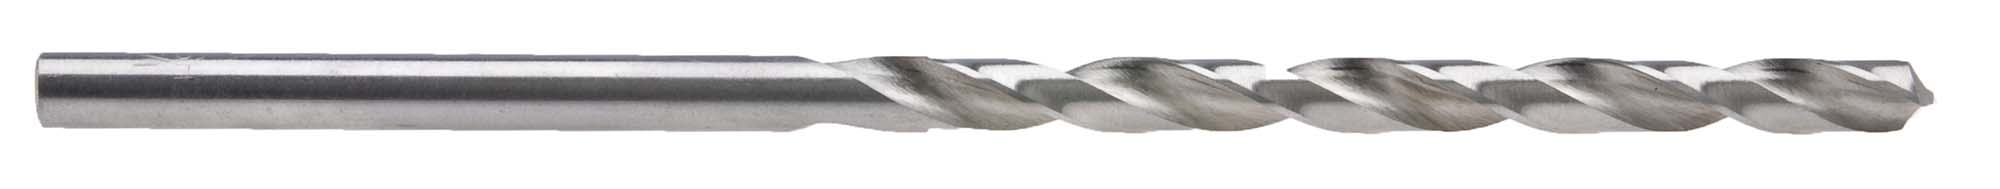 "15/64""  ""Taper Length"" Long Straight Shank Drill Bit, 6 1/8"" Overall Length, High Speed Steel"